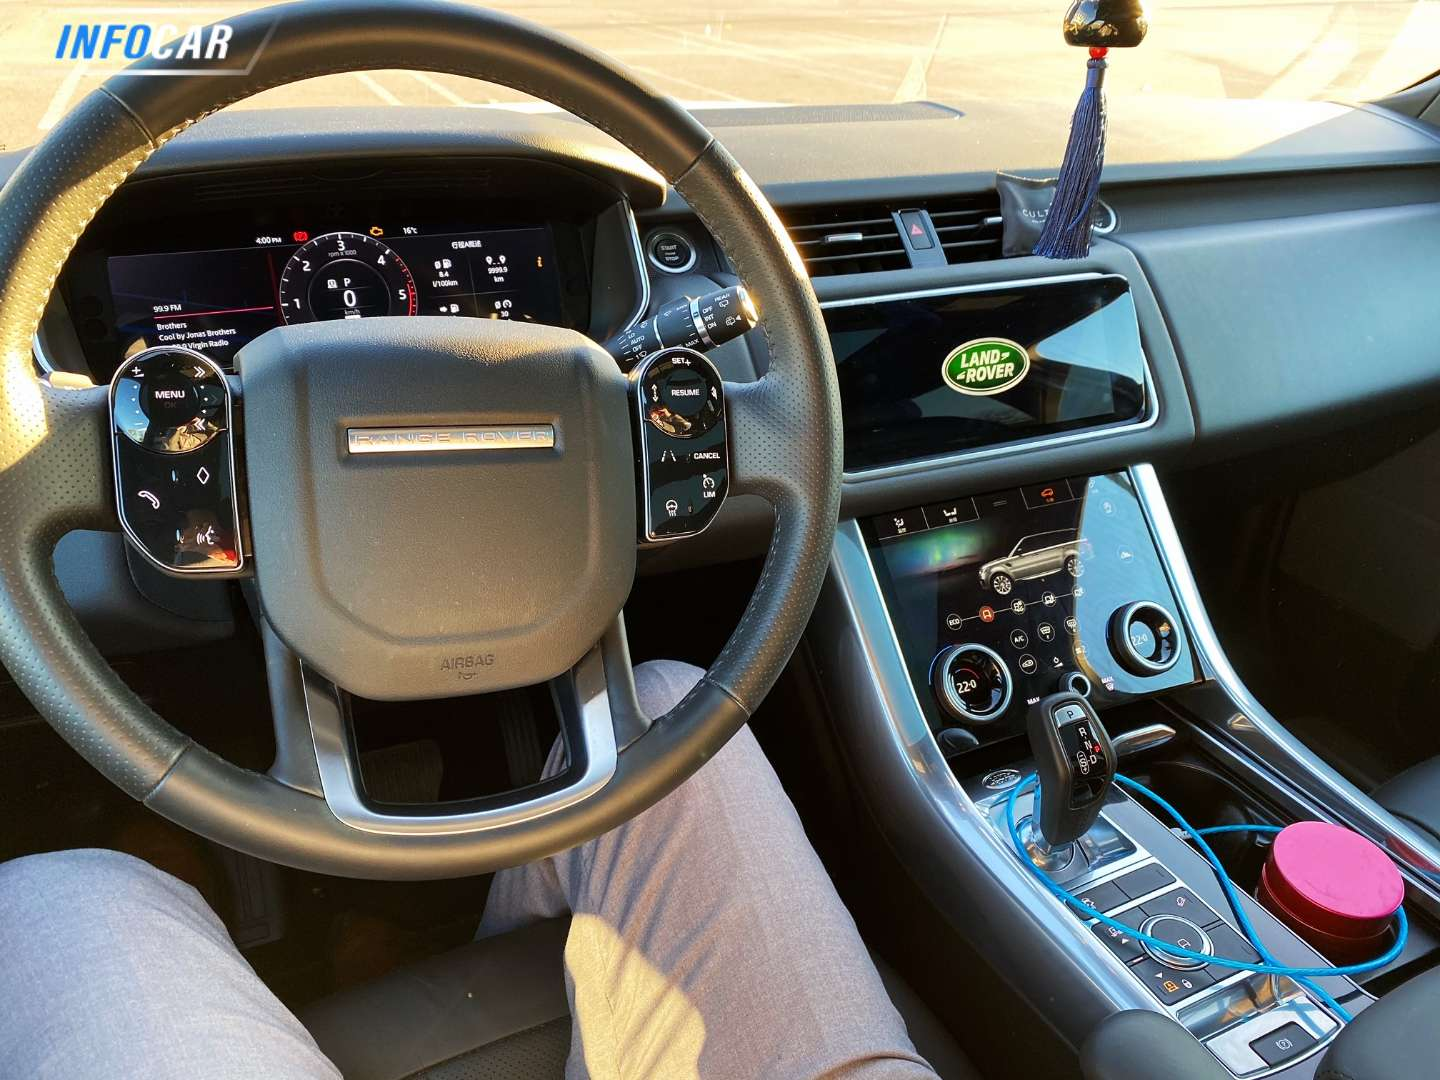 2020 Land Rover Range Rover Sport Range Rover Sport TD6 HSE - INFOCAR - Toronto's Most Comprehensive New and Used Auto Trading Platform